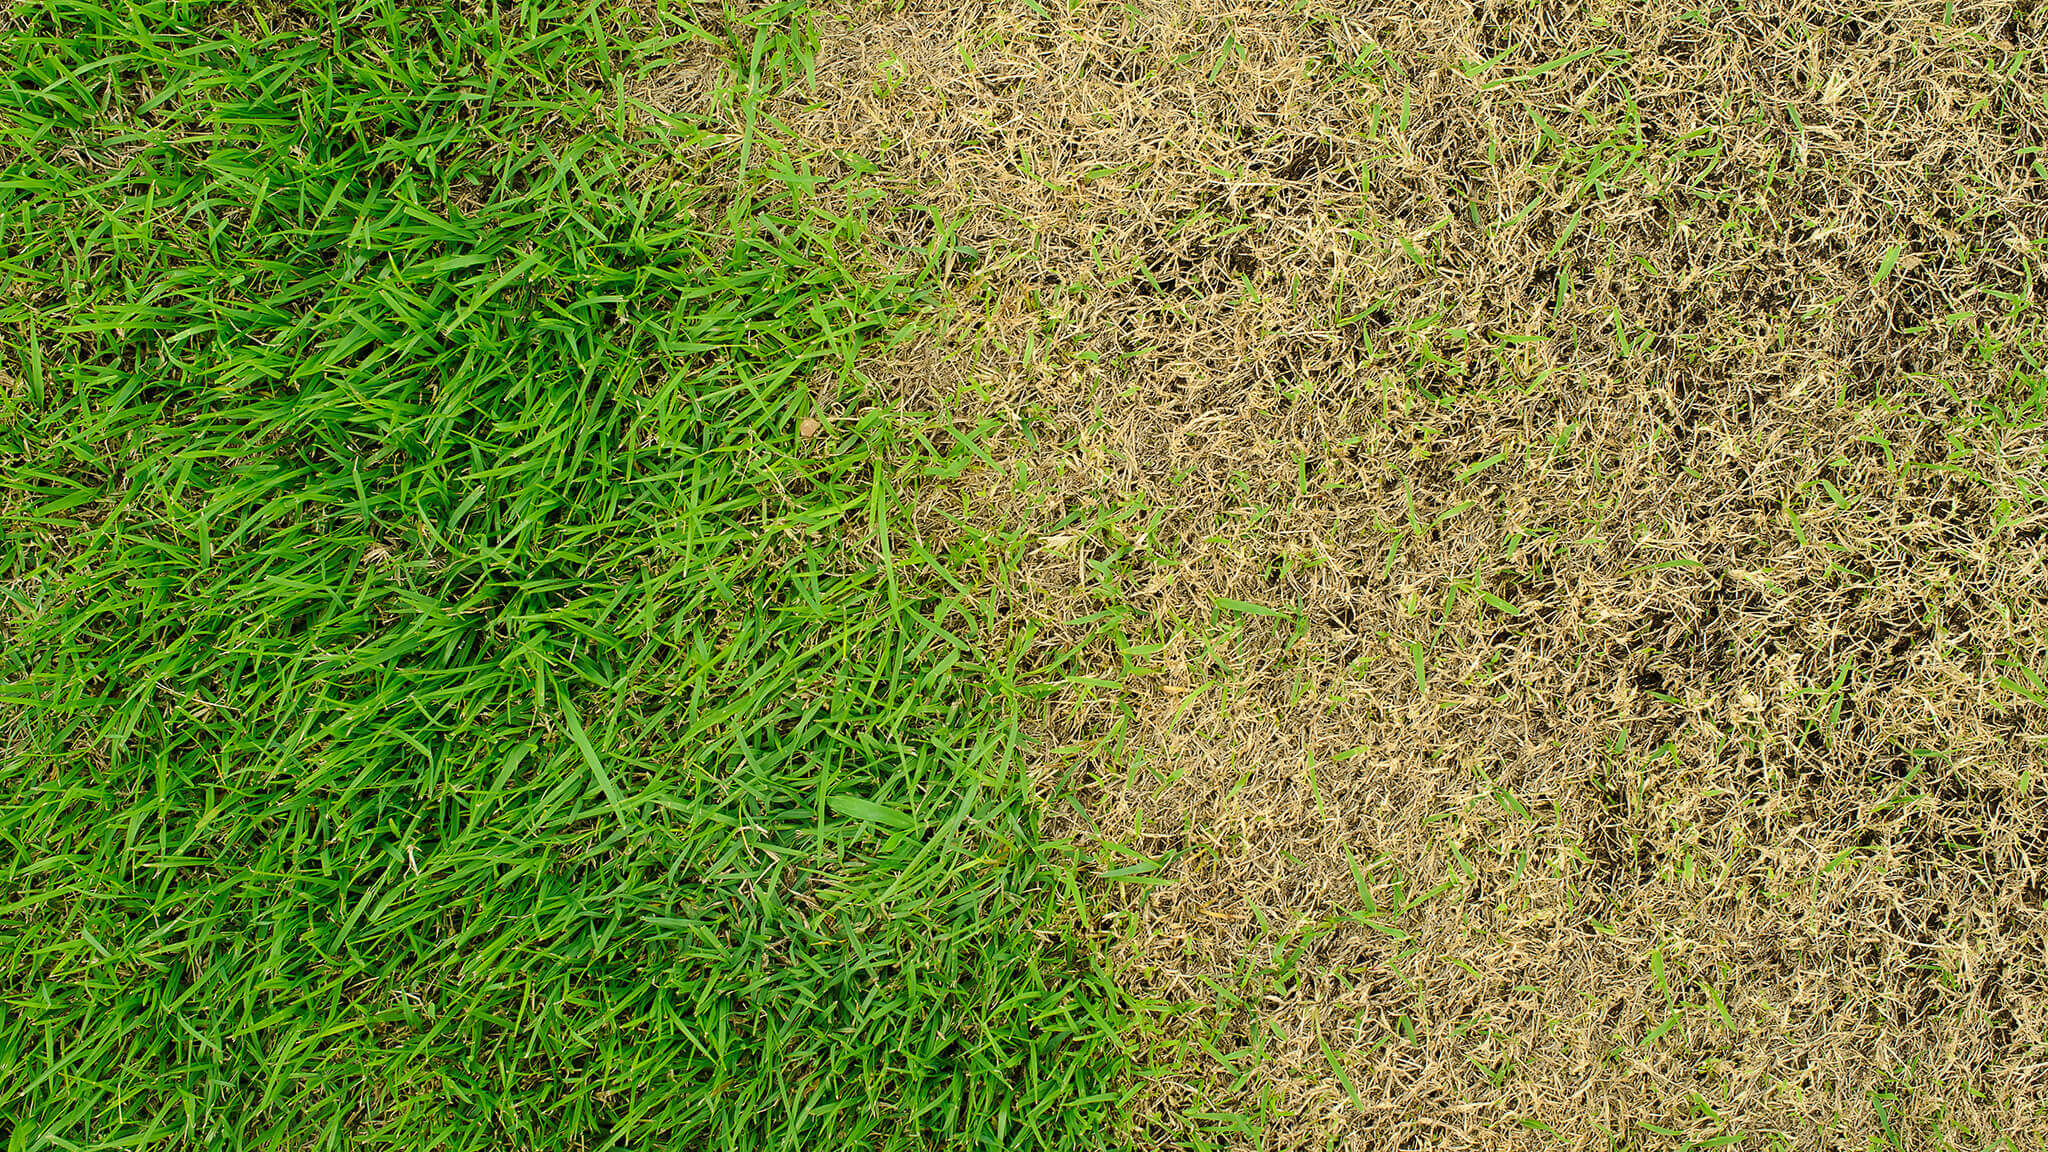 Lawn disease - identification and treatment Bedfordshire, Essex, Herts